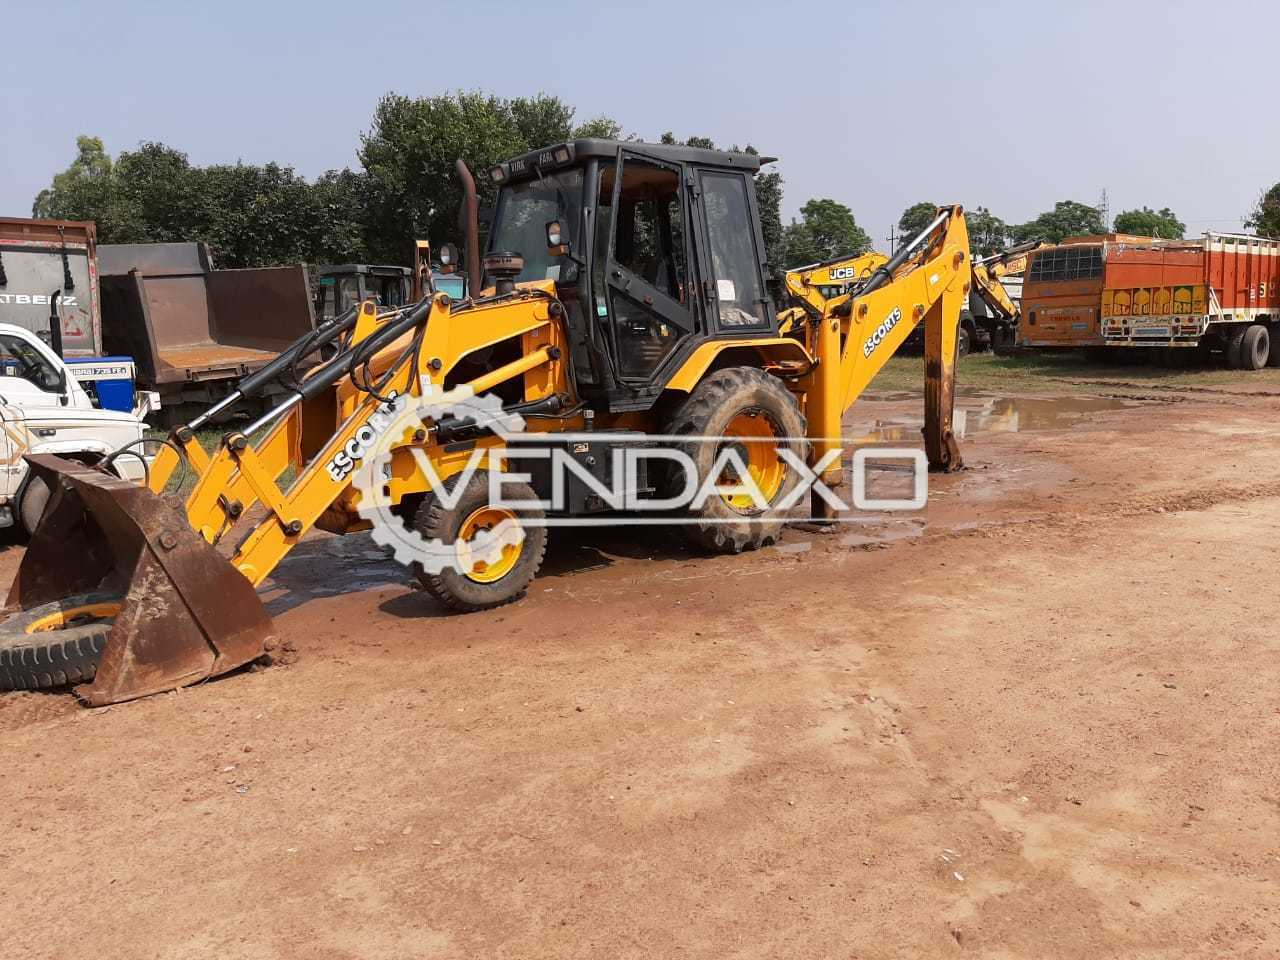 Escorts JCB Digmax II Backhoe Loader - Power - 76 HP